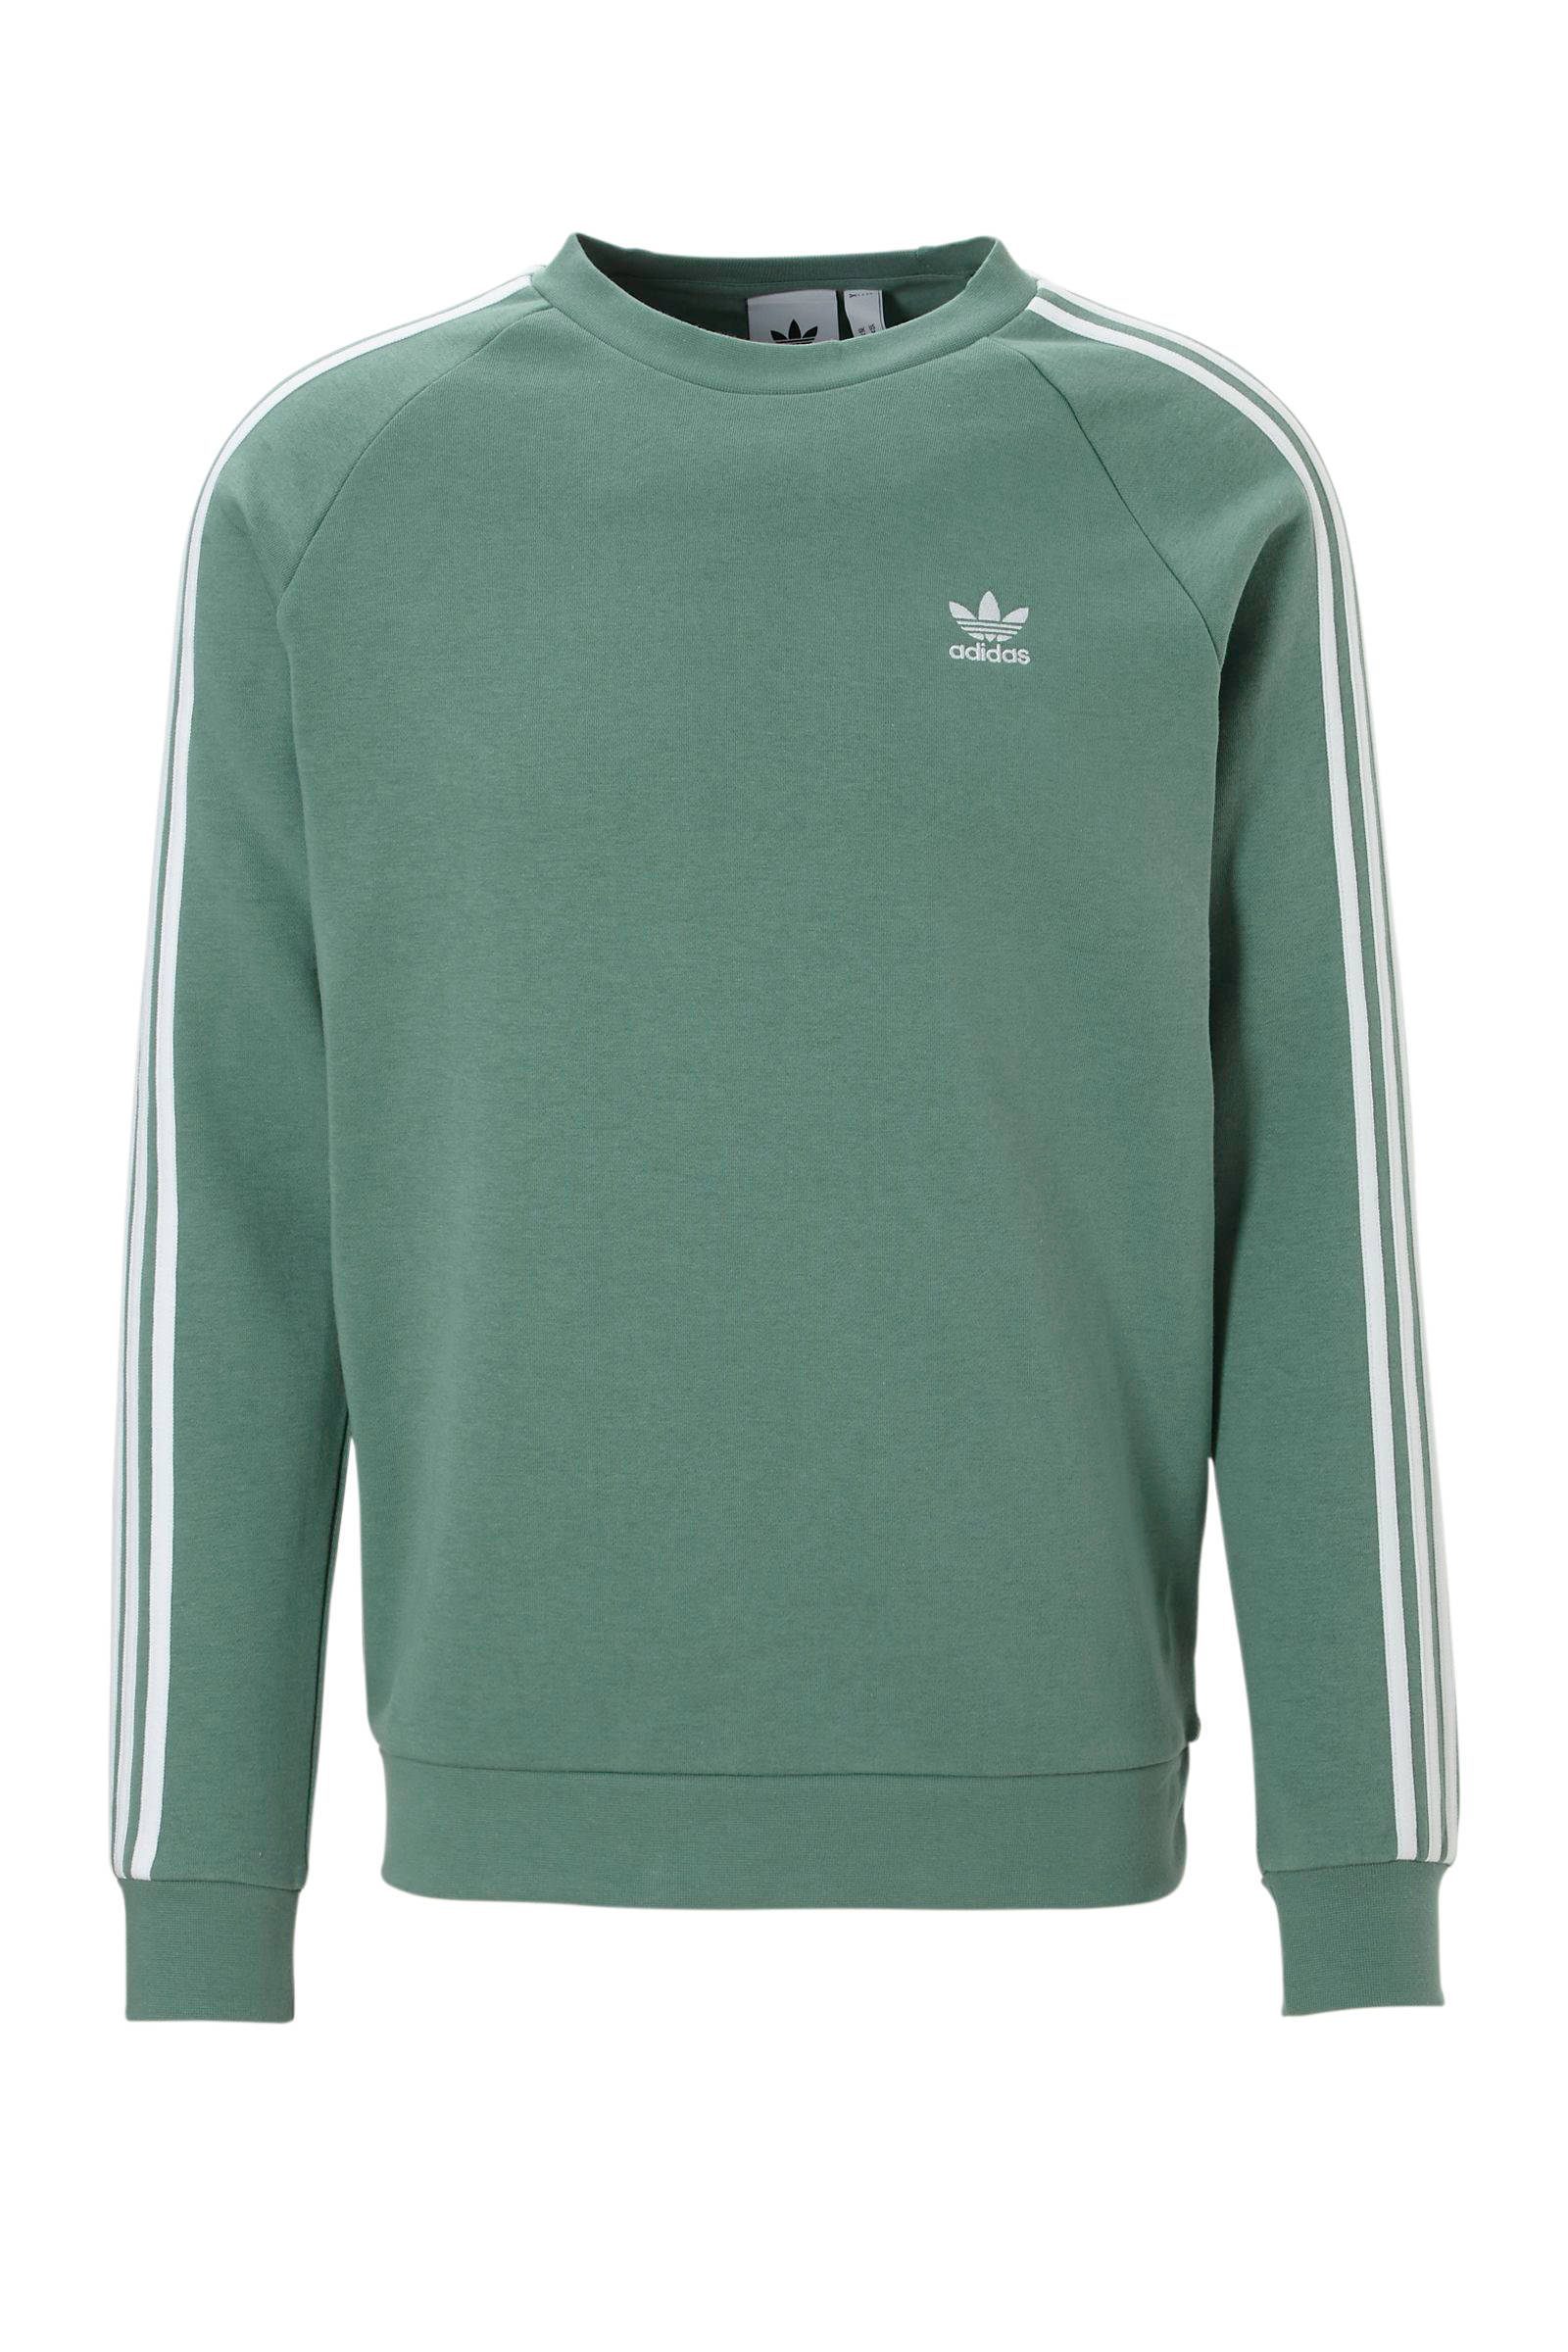 adidas original sweater dames